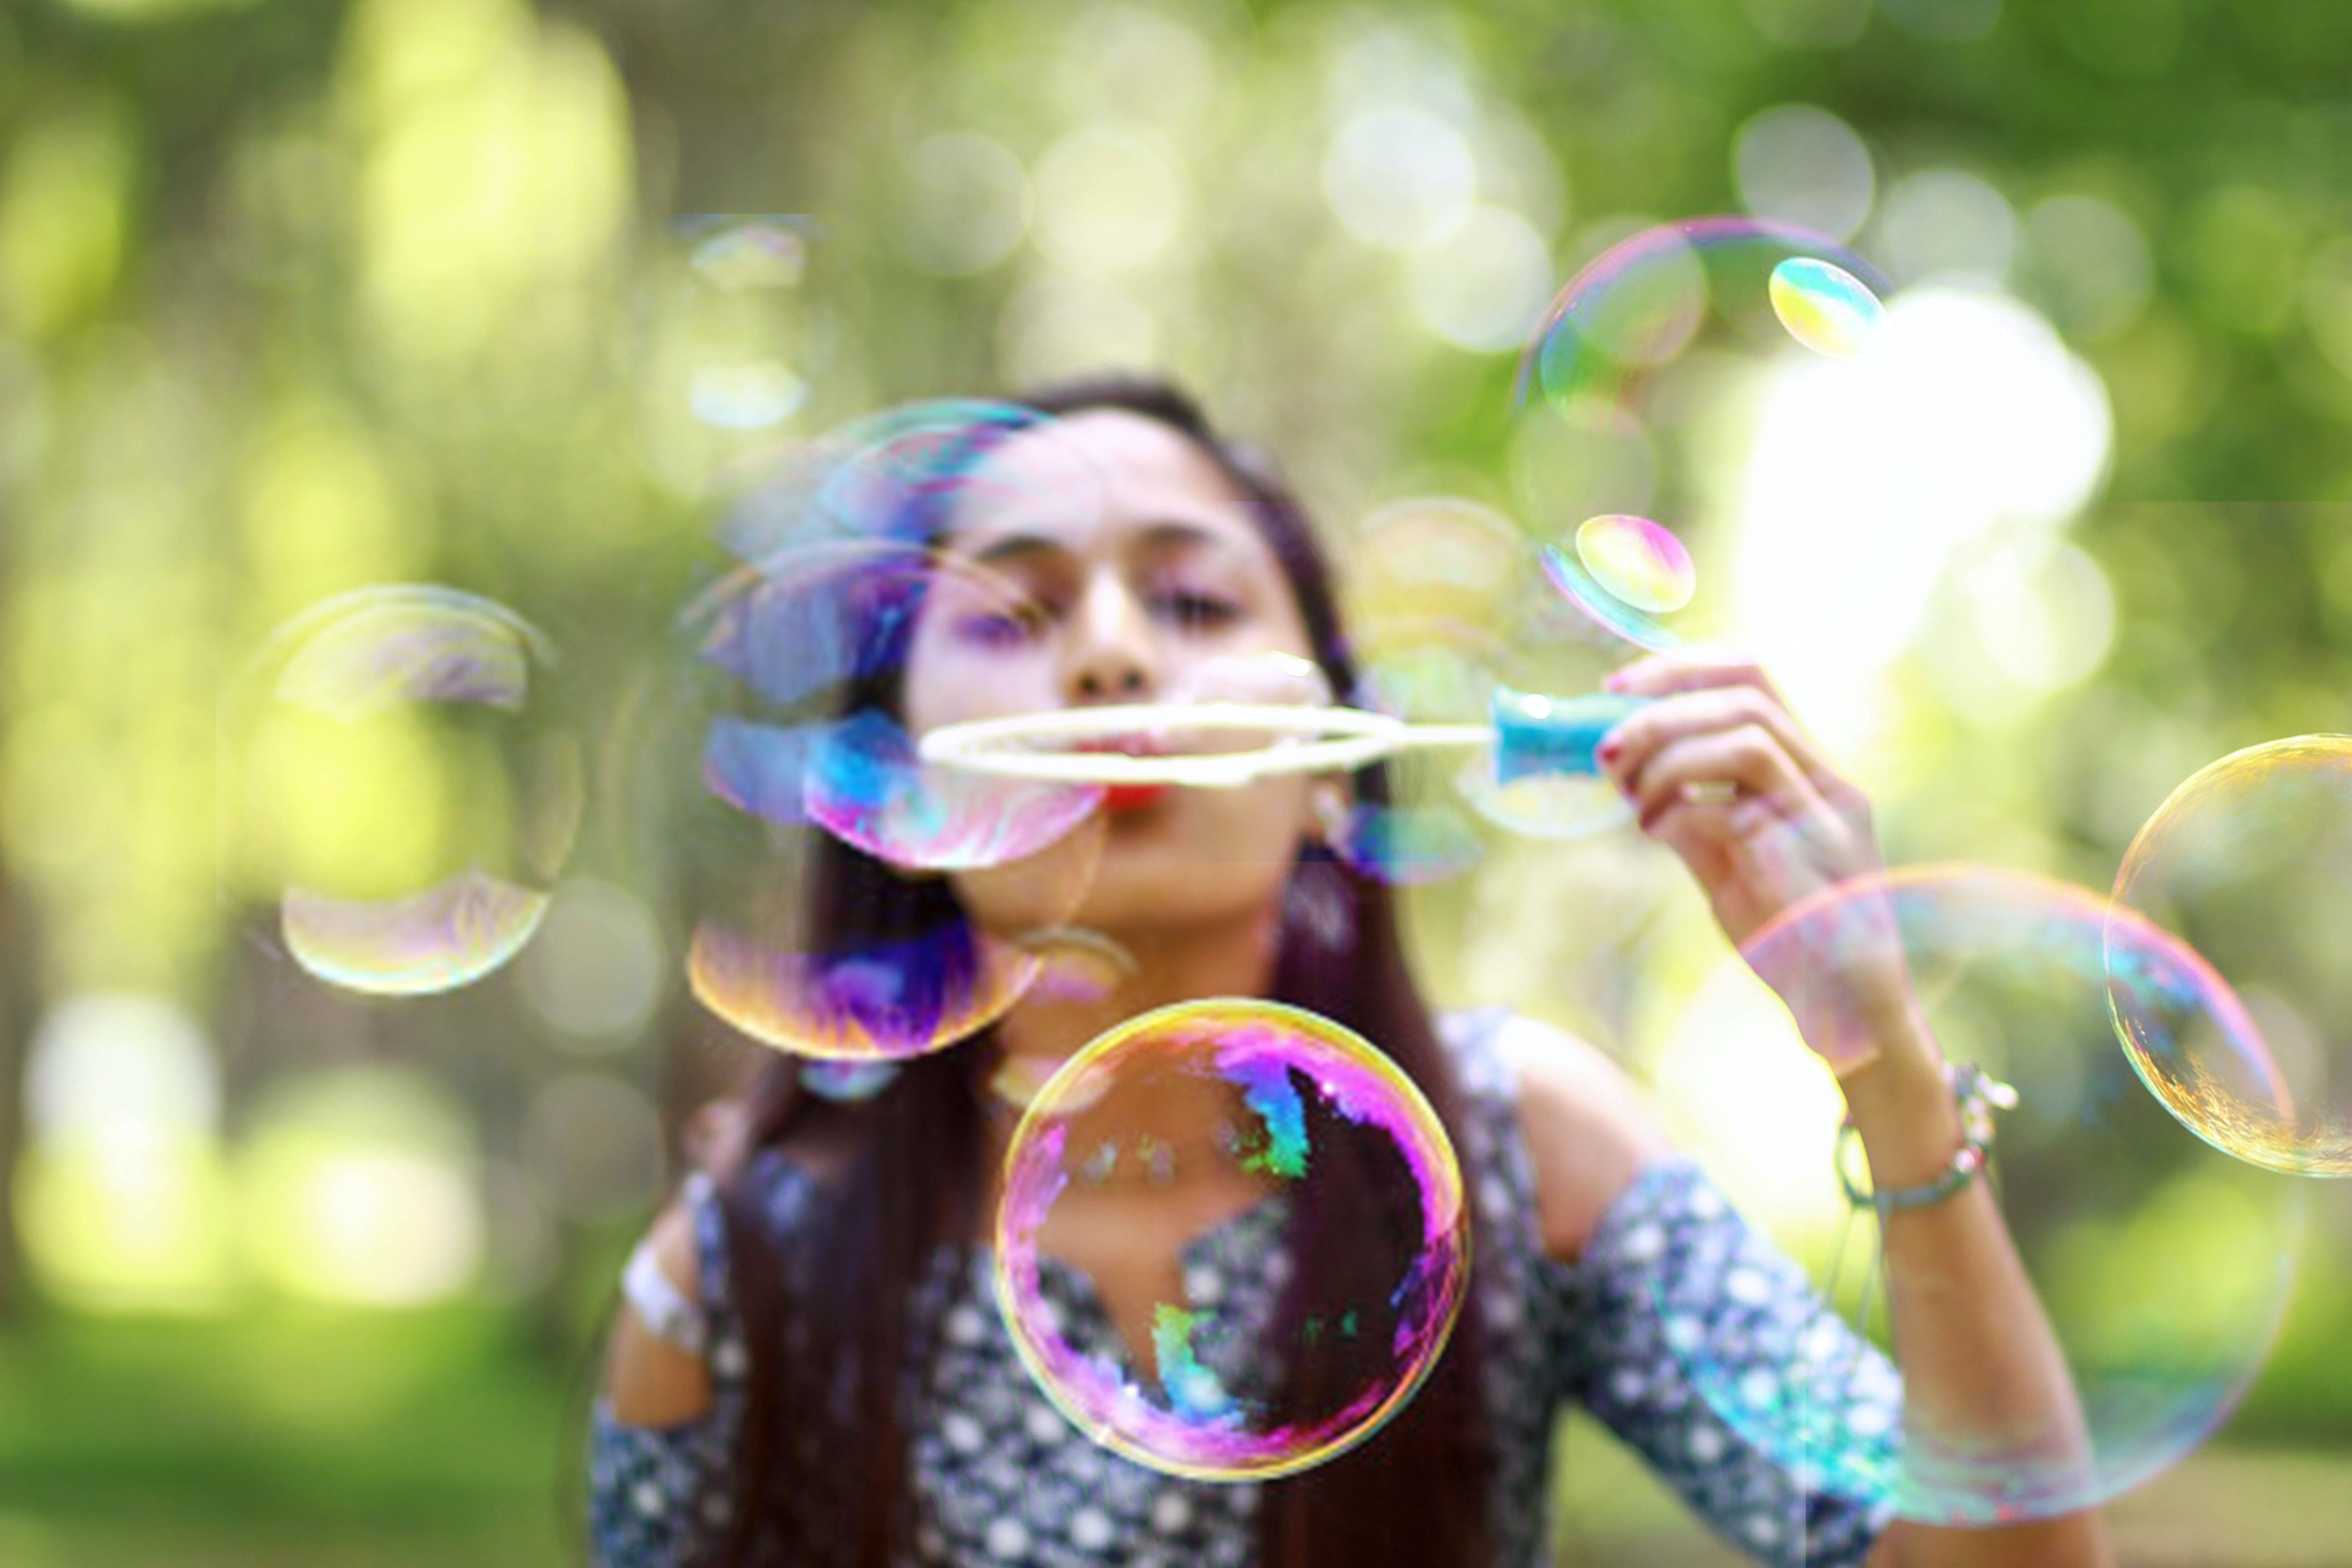 Woman Blowing Bubbles